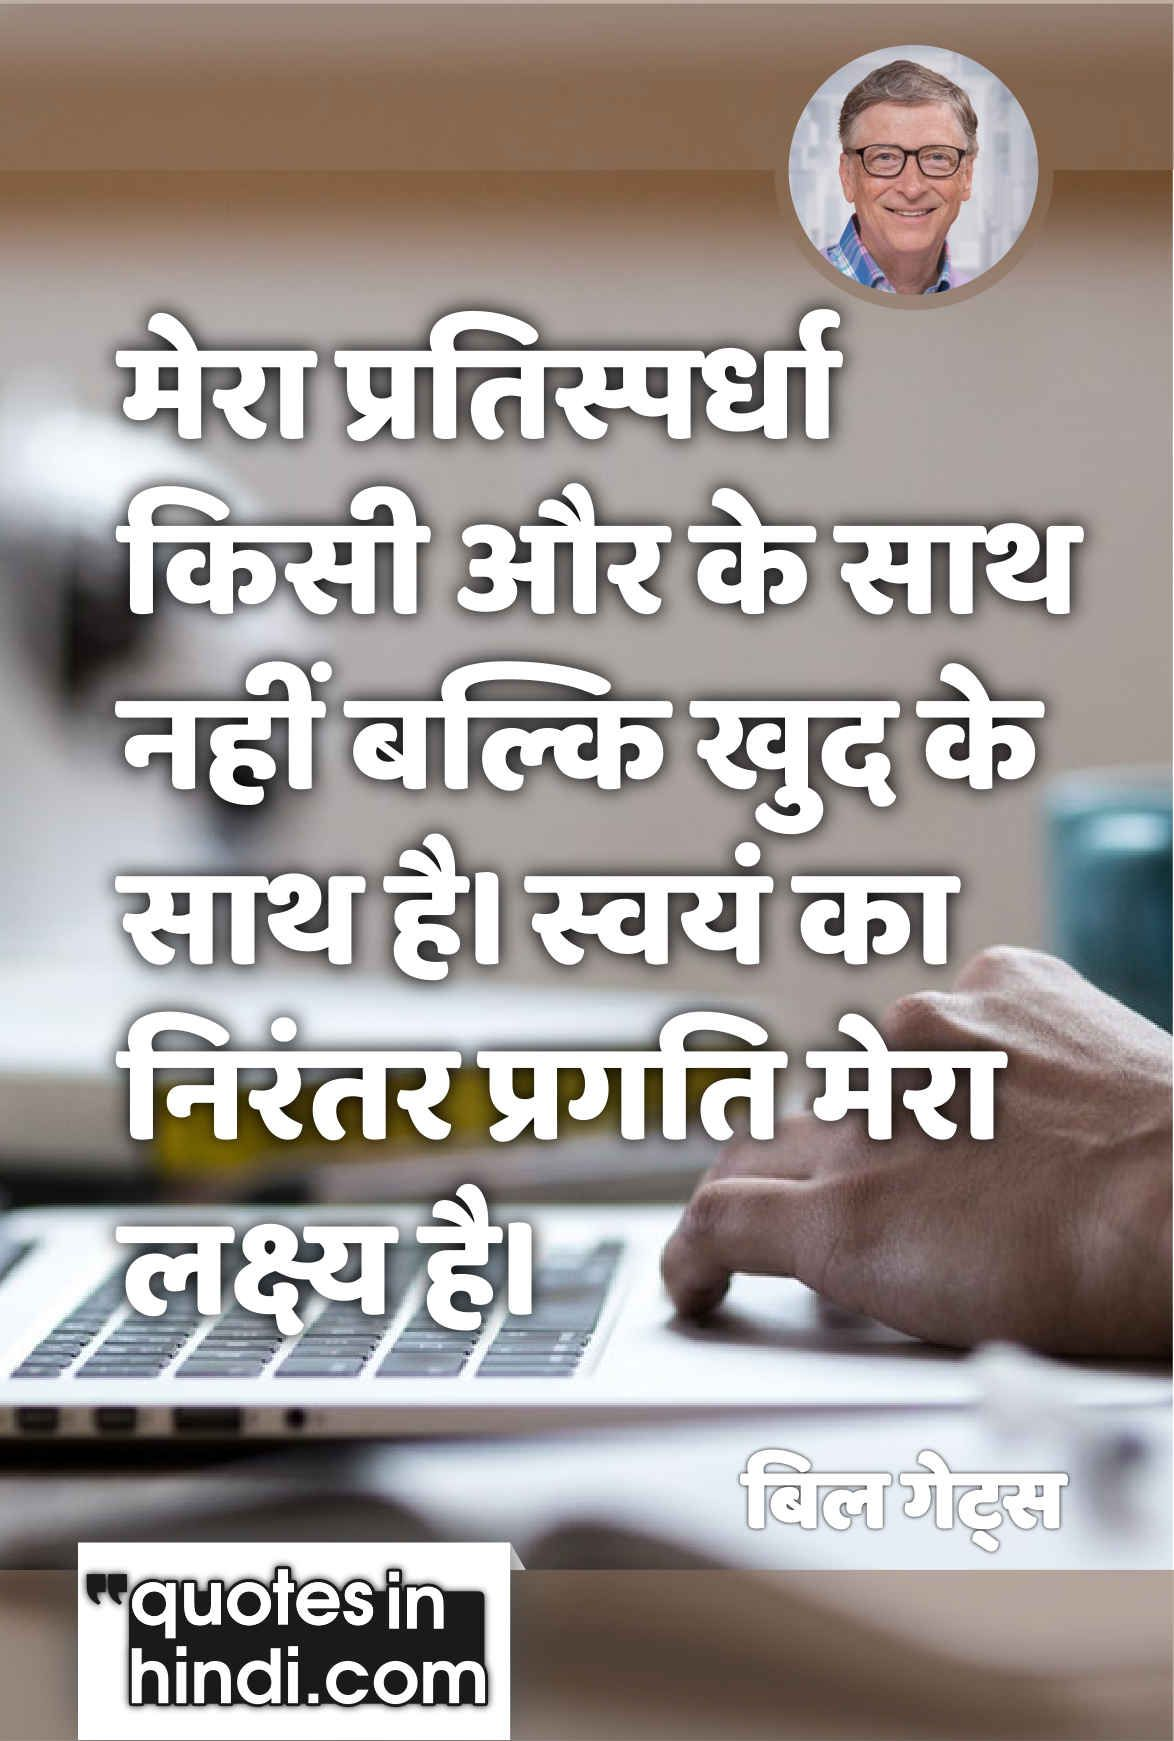 Bill Gates Quotes In Hindi Motivational Quotes In Hindi Collection